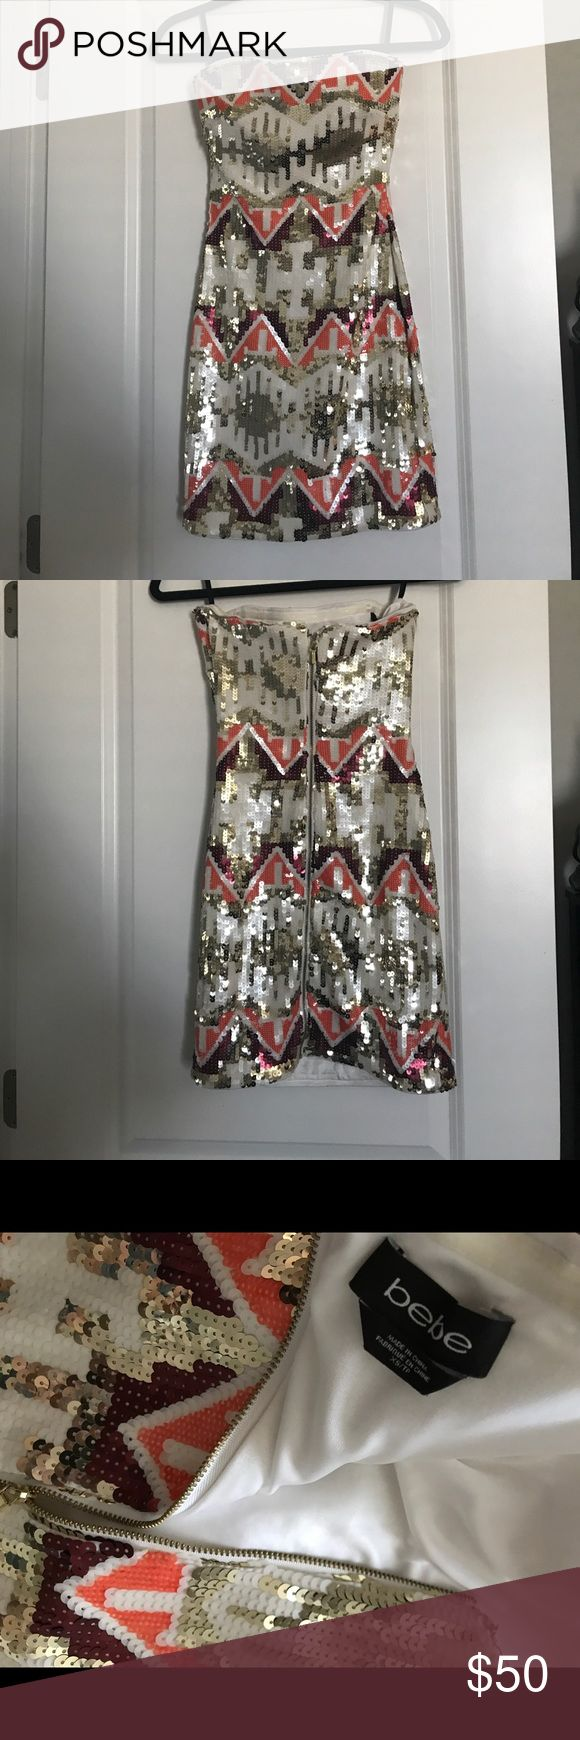 Bebe strapless sequin dress! XS White, gold, maroon, and orange sequin Bebe mini dress! Sz. Xs! Worn ONCE! EUC plus I will throw in an Aldo purse that can be worn as a clutch or shoulder bag for FREE! bebe Dresses Mini